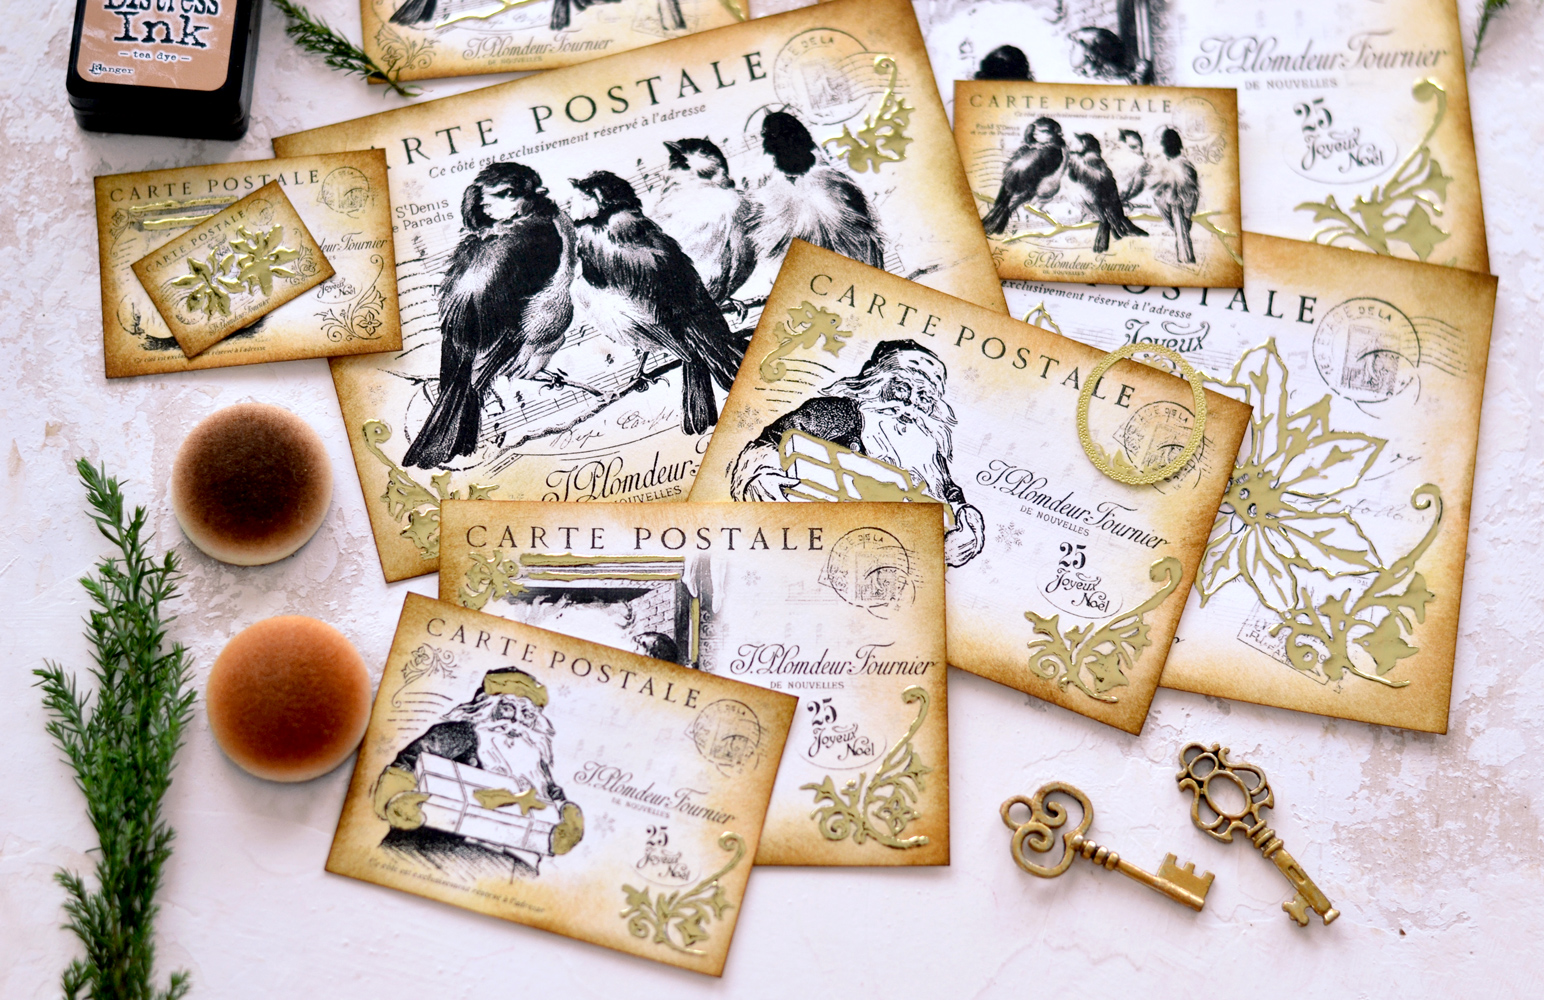 DIY Gold foil Christmas postcards with different images (birds, santa and flourishes), placed on a table along with distress ink foams, greenery and keys